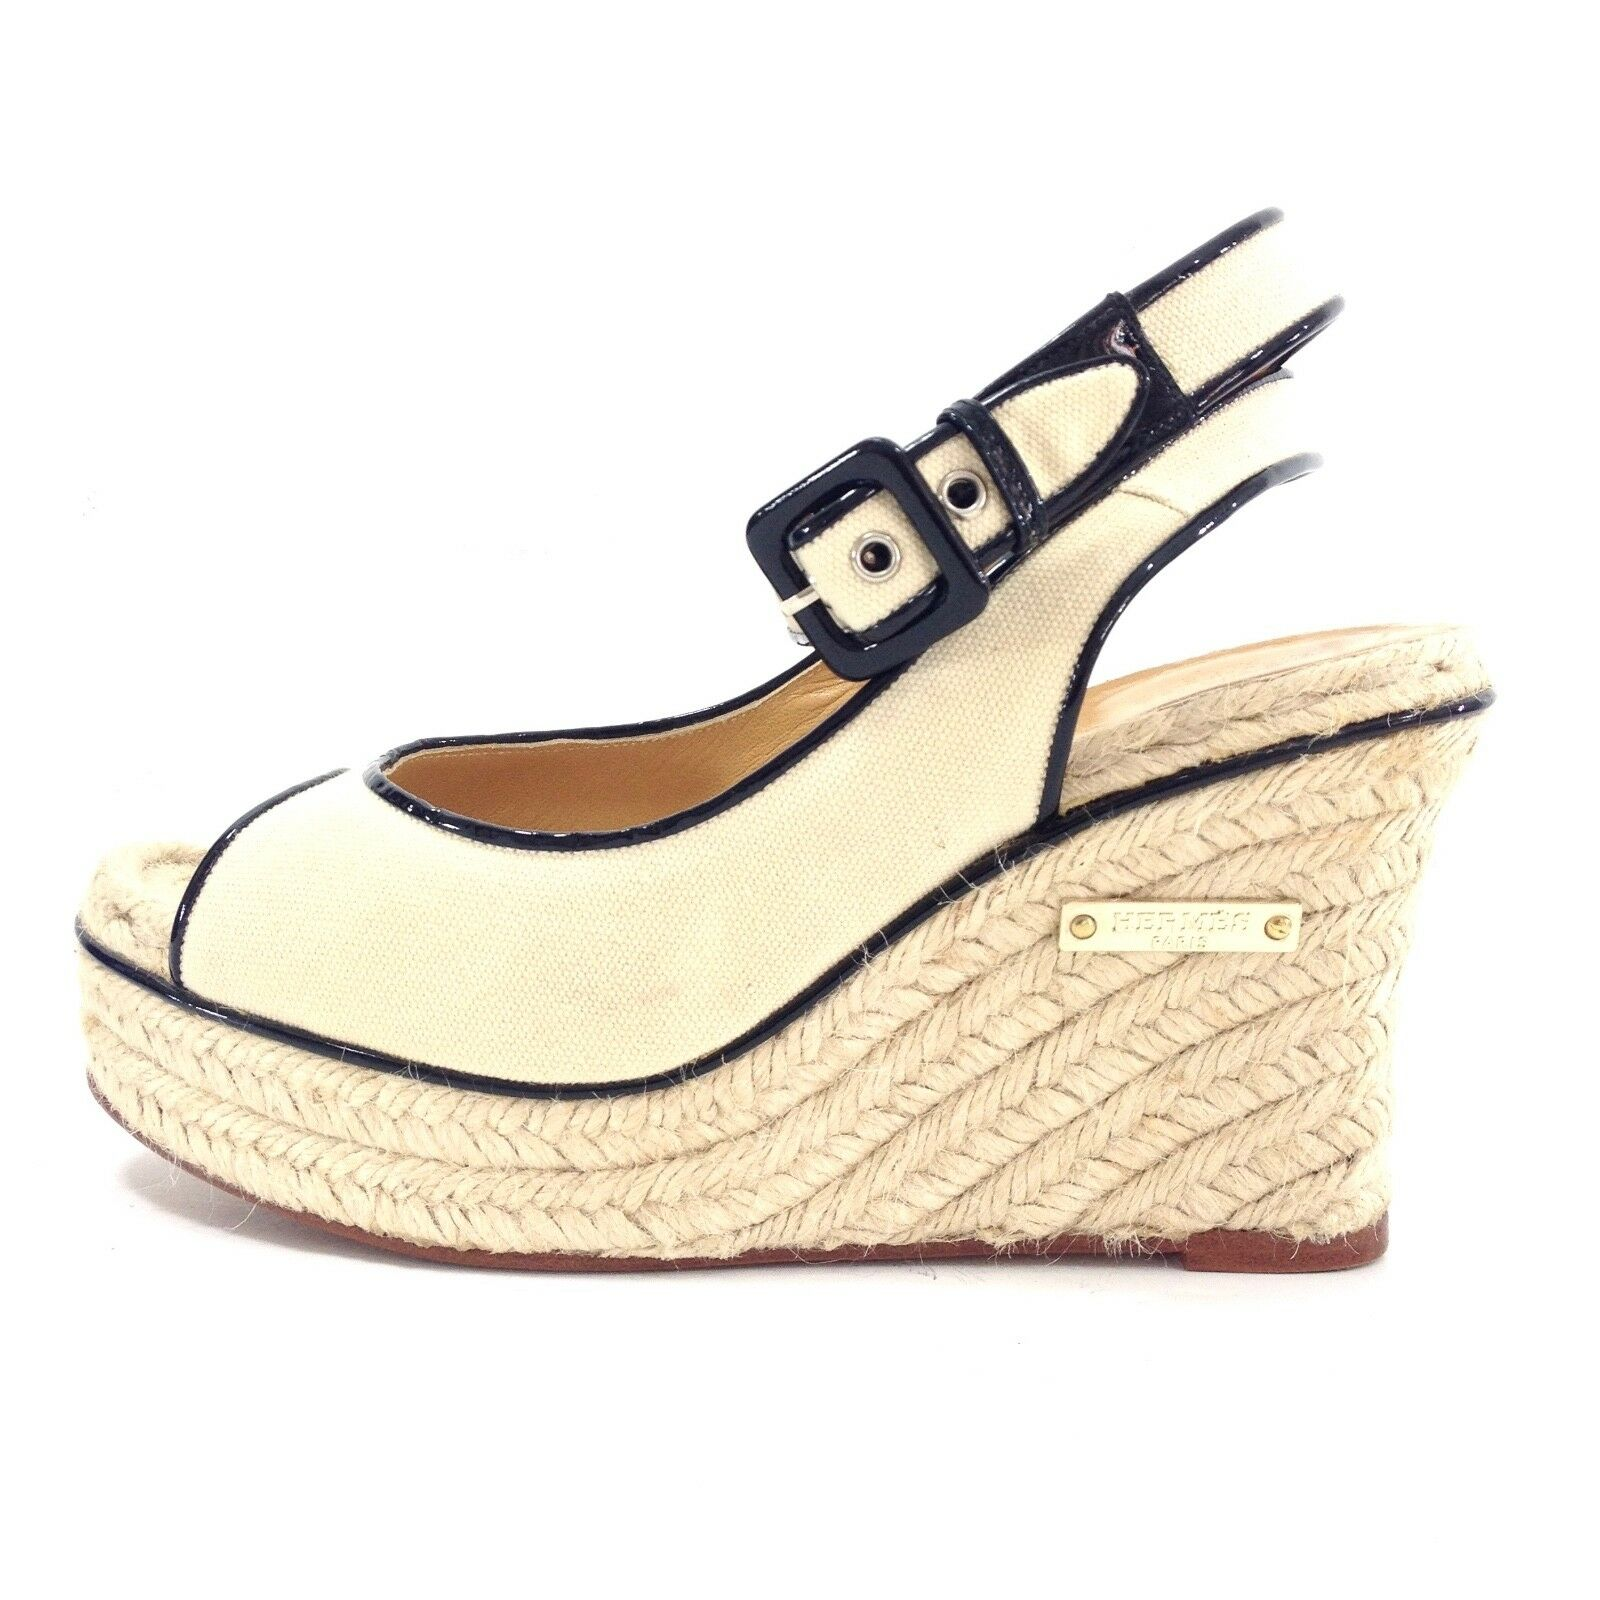 Hermes Ivory Canvas and black leather trim wedges w logo 38   7